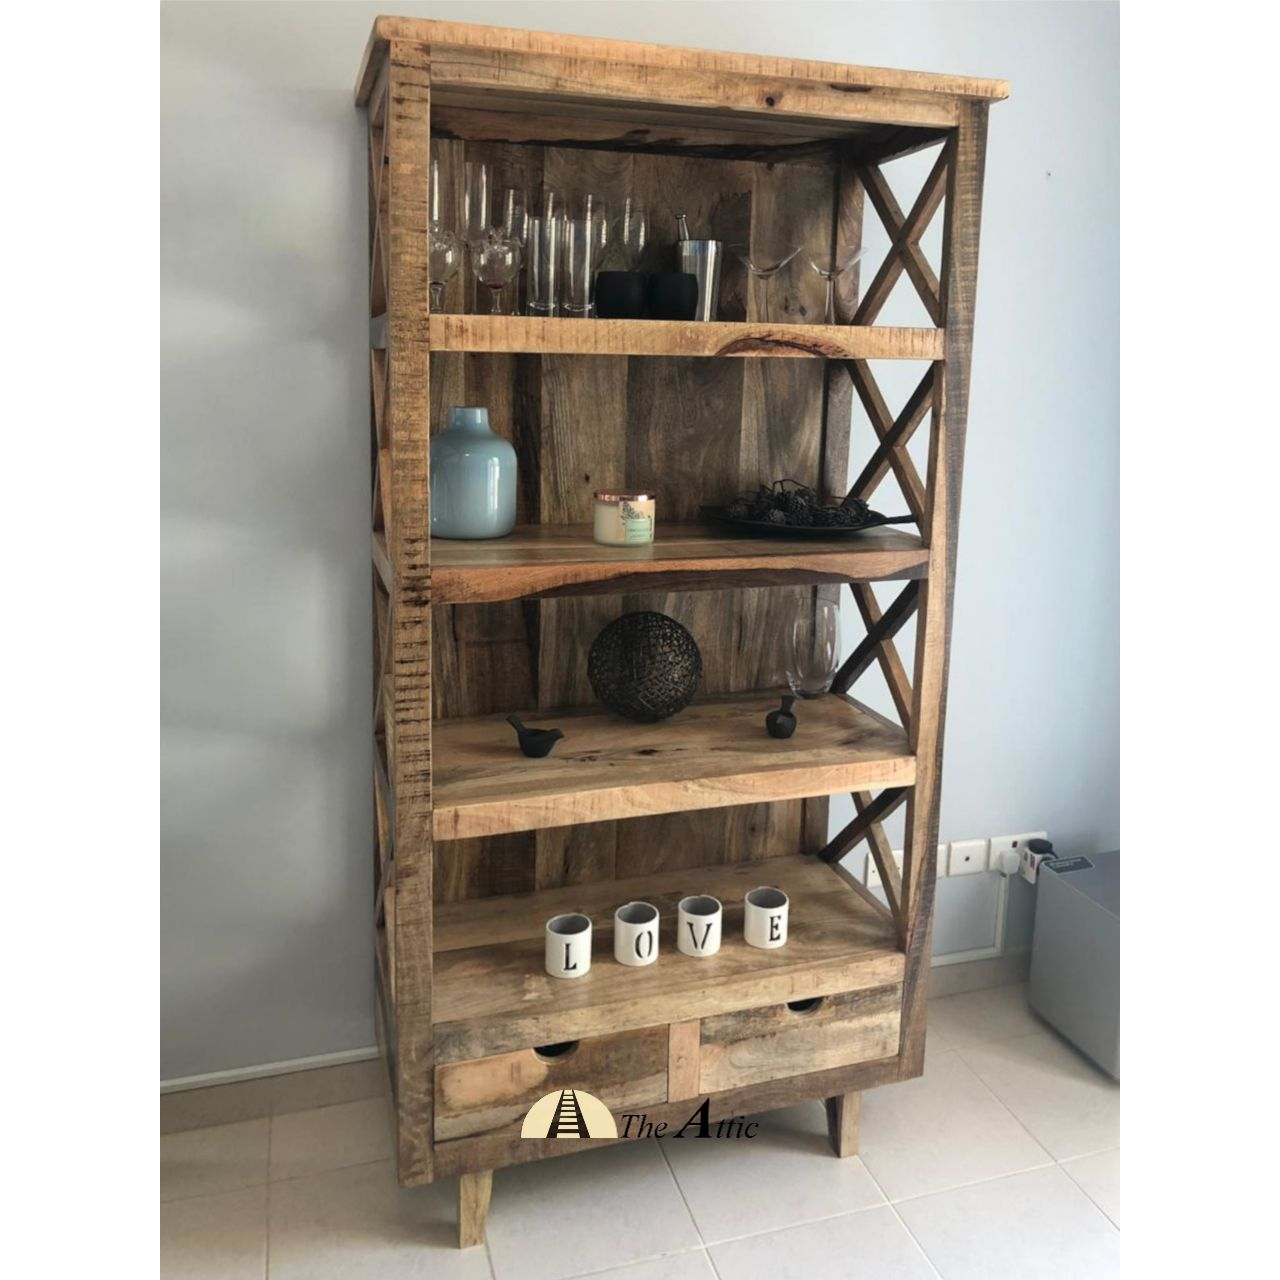 Rustic Modern Solid Mango Wood Bookshelf With A Smooth Highly Polished Finish That Highlights The Natural Wood Gr Shelves Wood Bookshelves Solid Wood Furniture